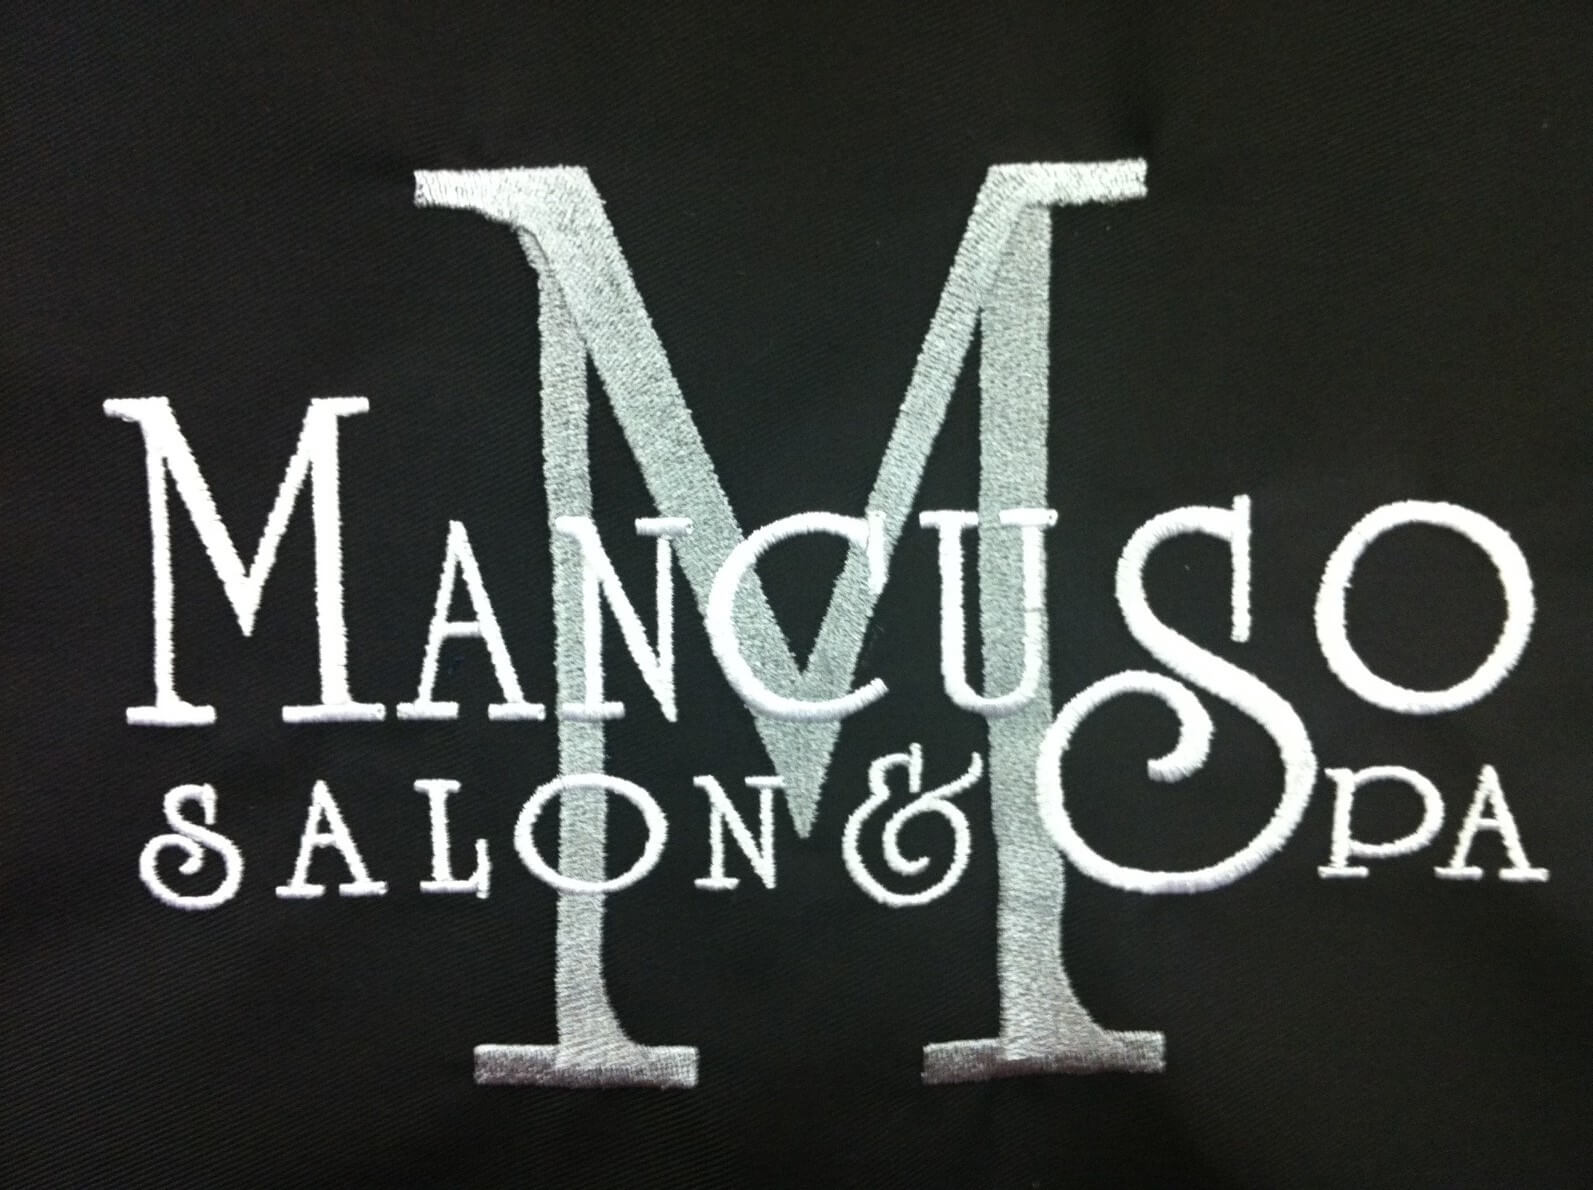 Mancuso salon and spa loves Custom Salon Capes!